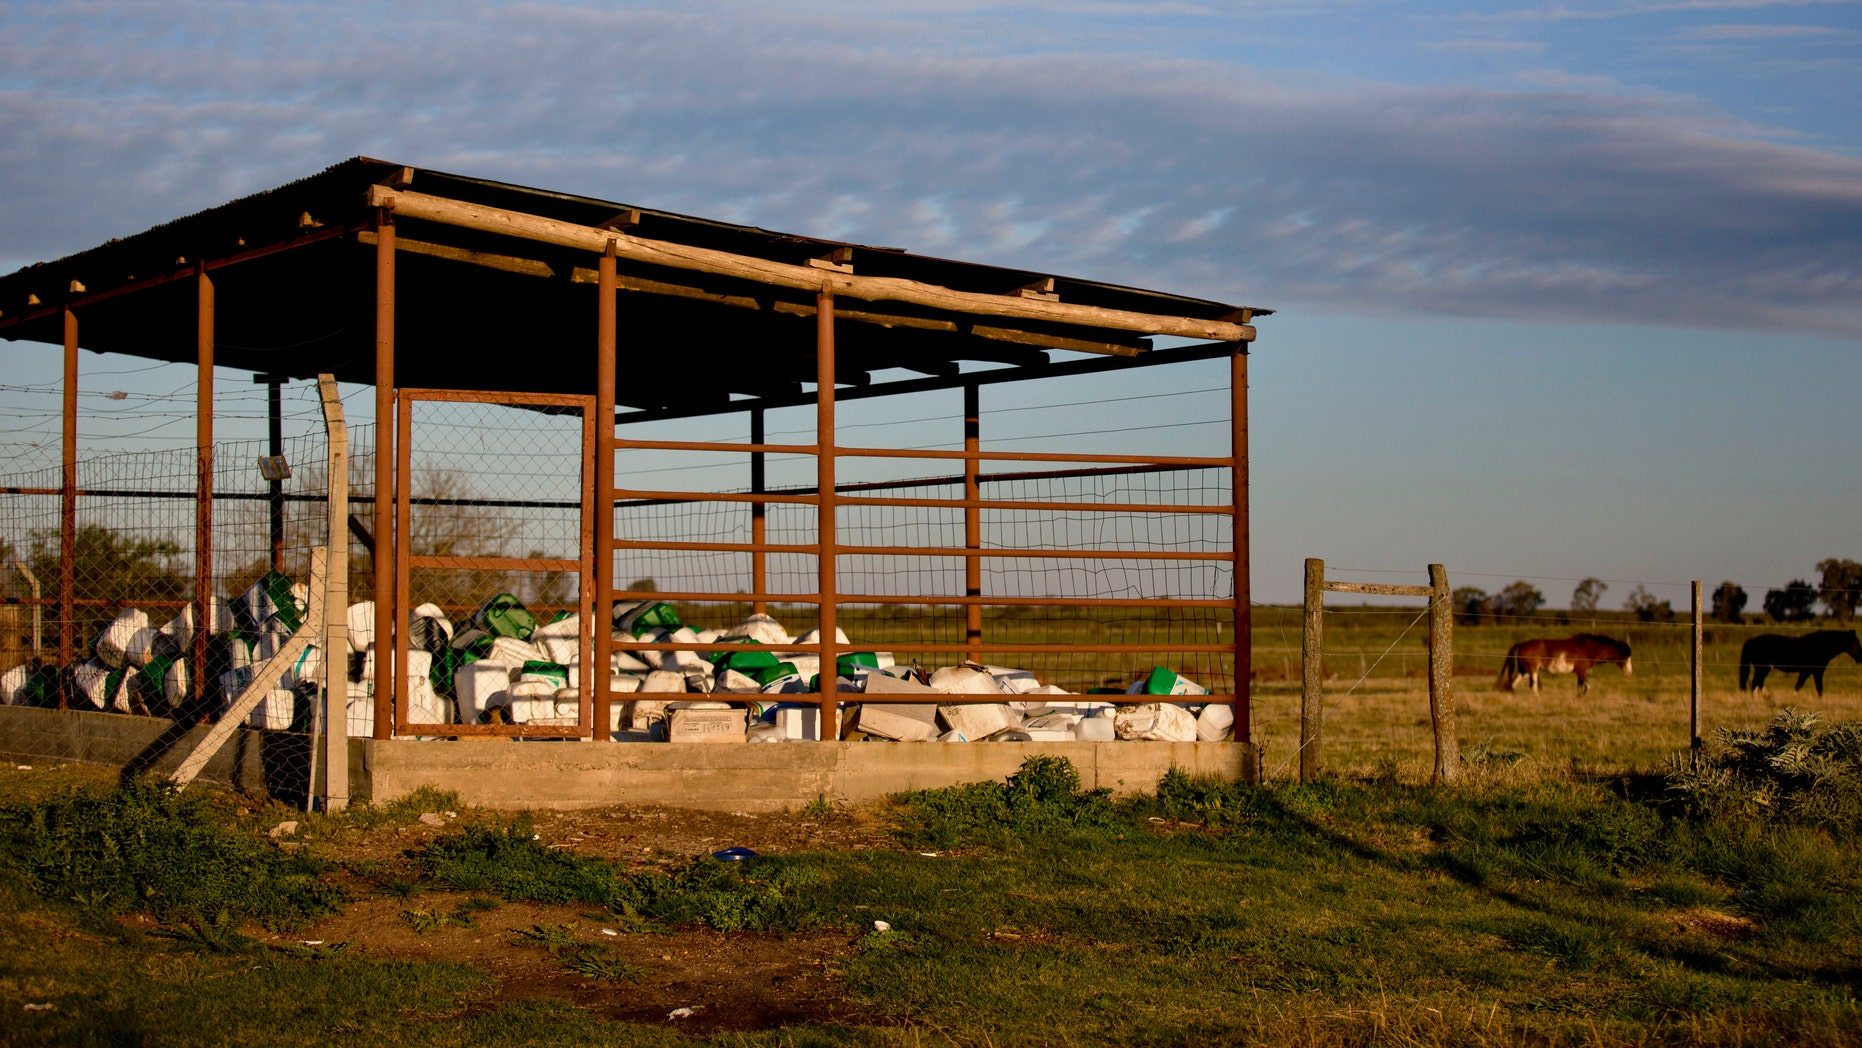 Empty pesticide containers ready for recycling are collected inside an enclosure by the farming business association in Gualeguaychu, in Entre Rios province, Argentina. (AP Photo/Natacha Pisarenko)